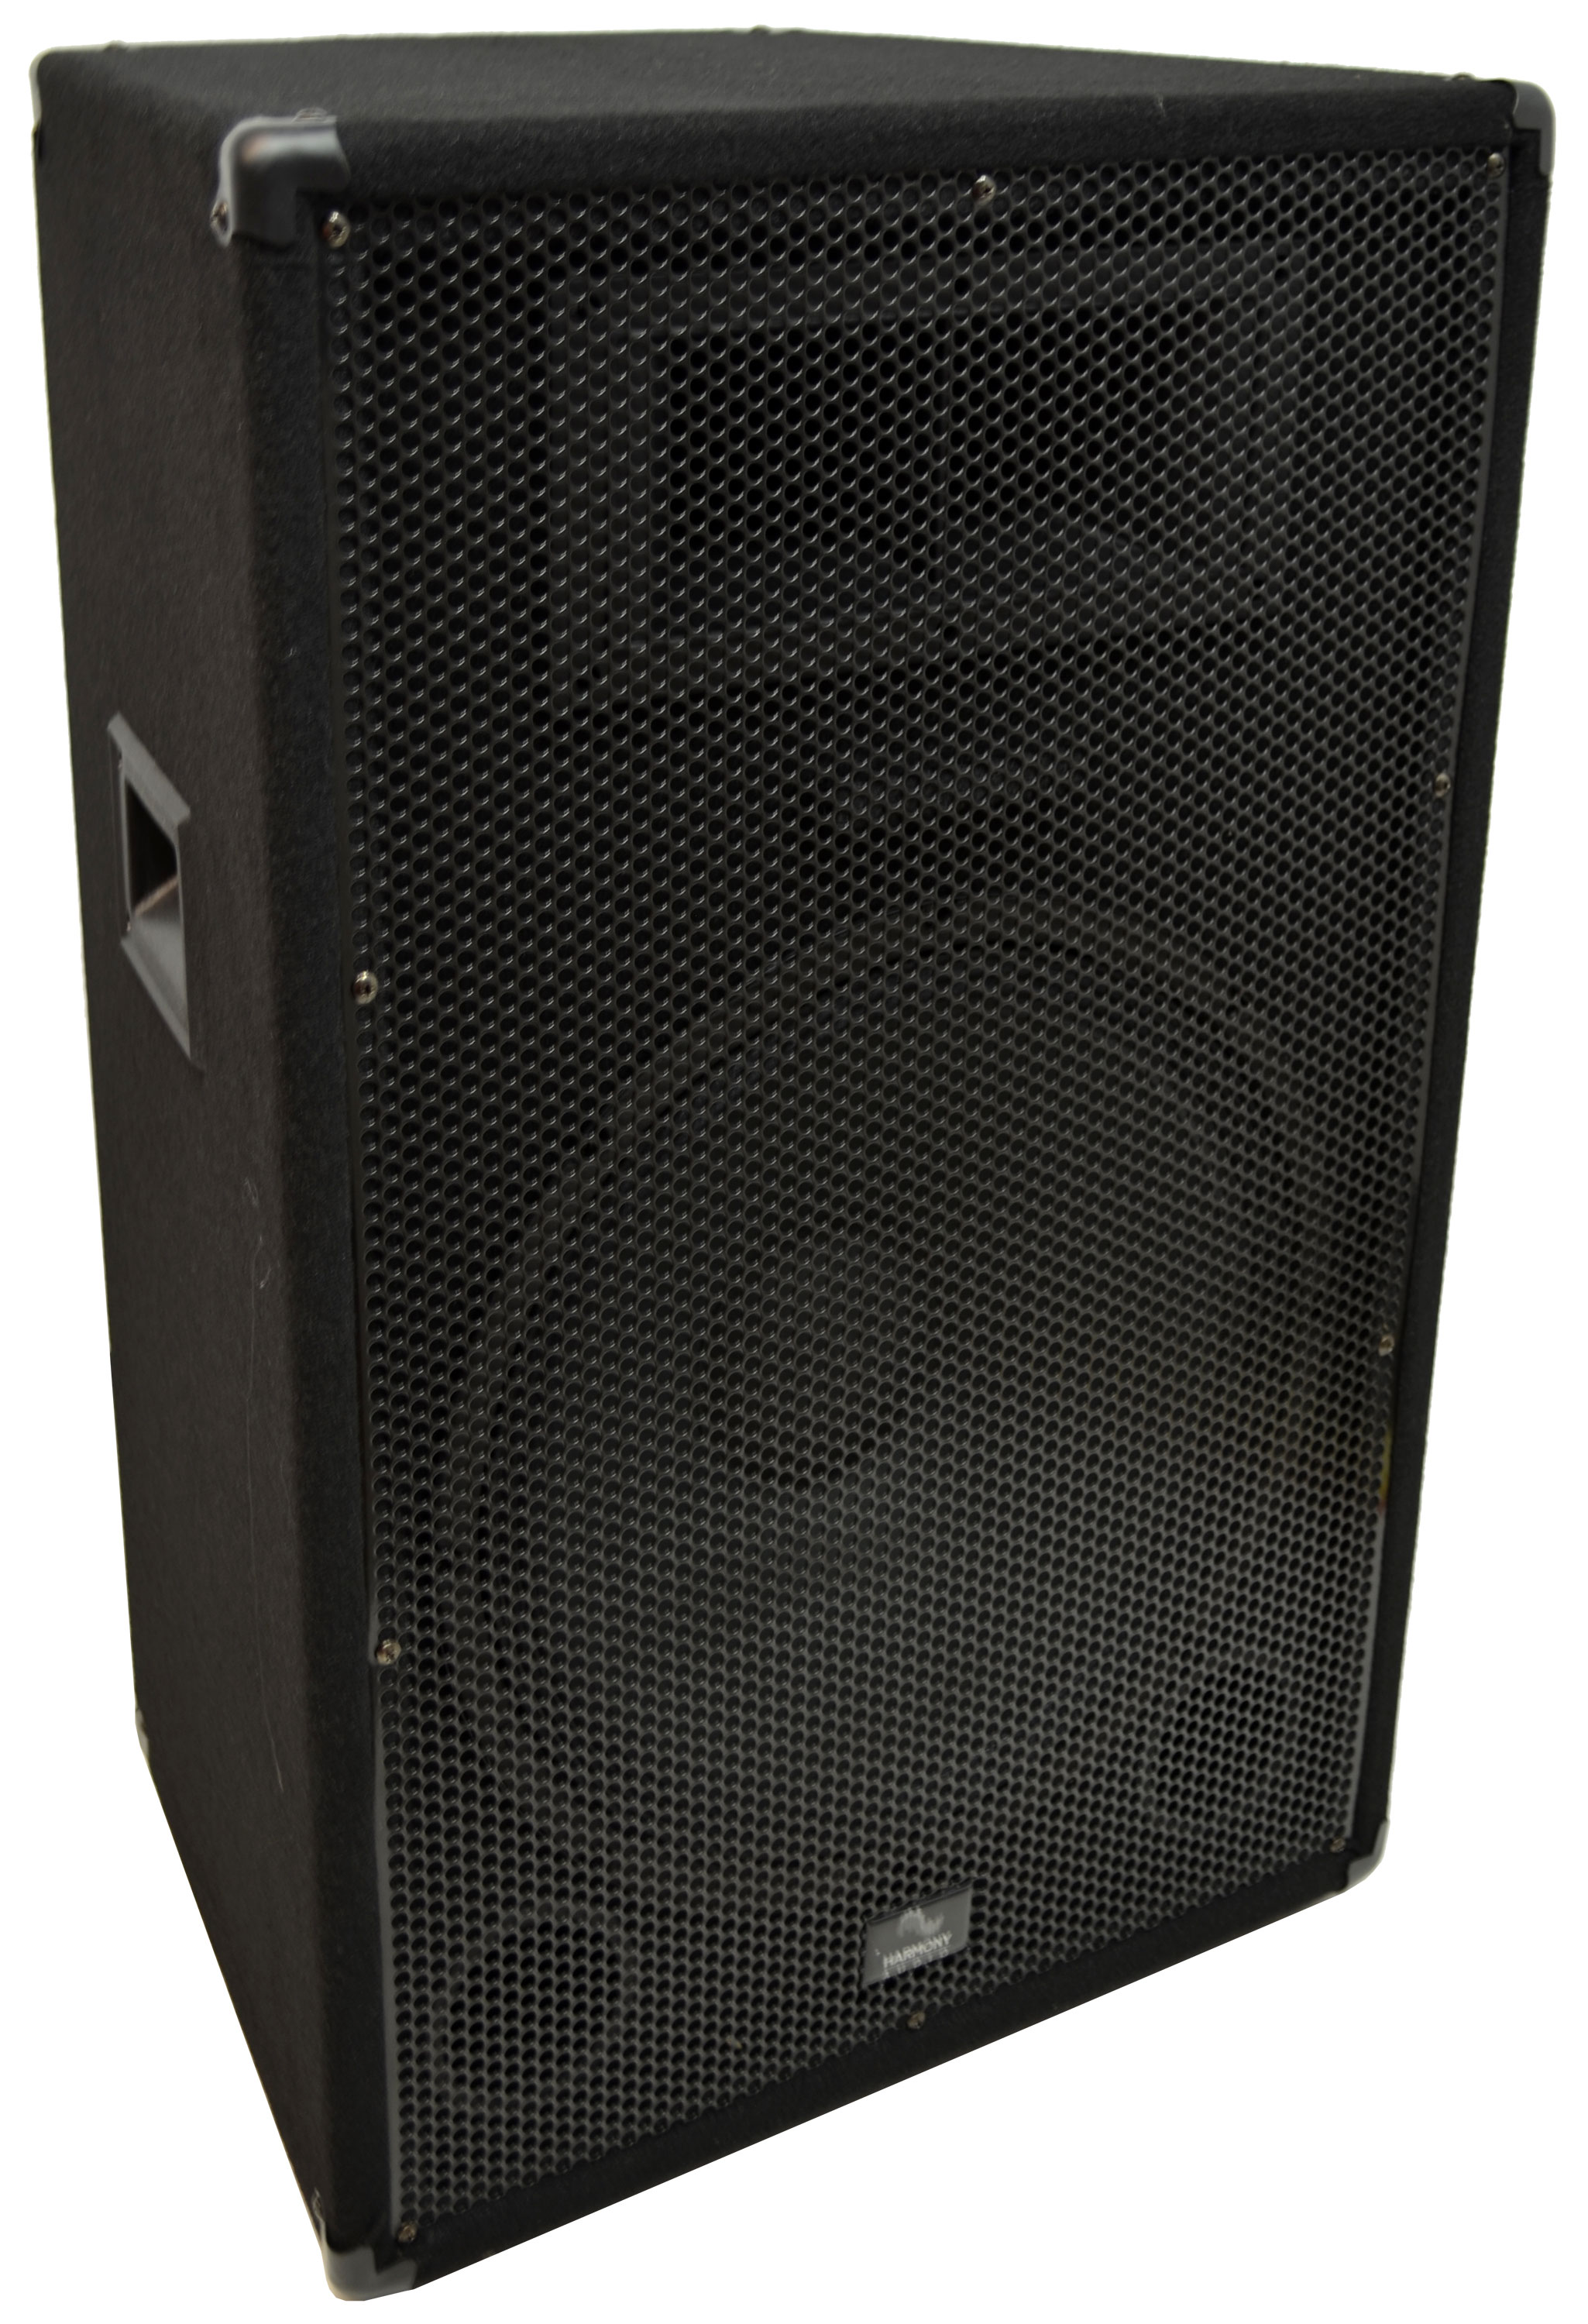 "Harmony Audio HA-V15P Pro DJ Venue Series 15"" Passive 900W PA Speaker 2-Way Cabinet"